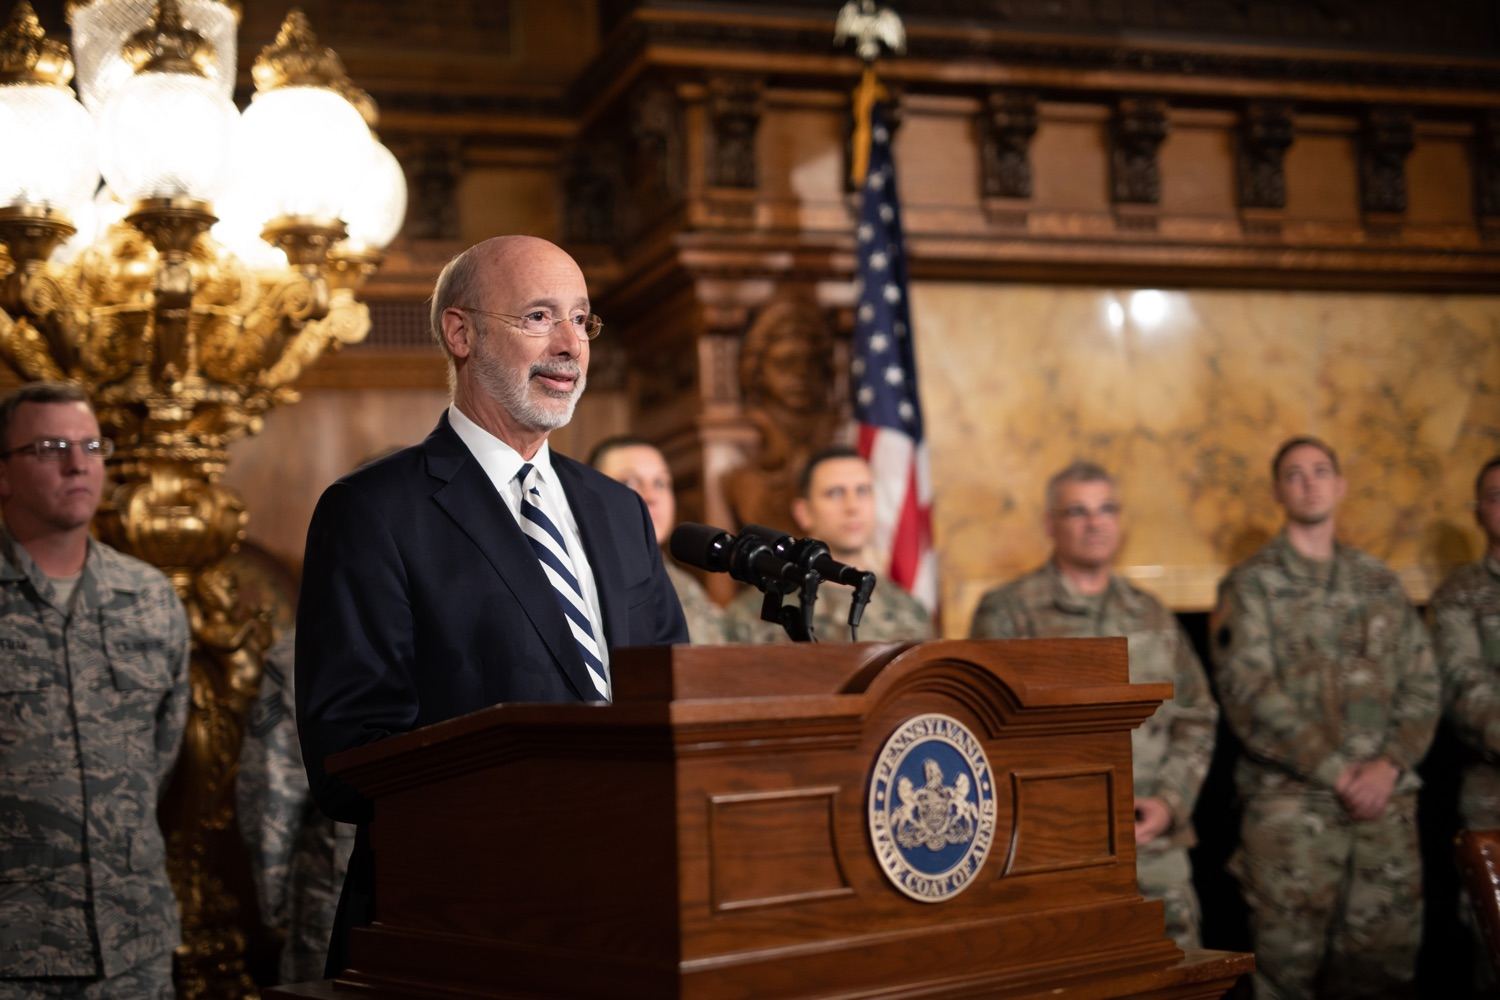 """<a href=""""https://filesource.wostreaming.net/commonwealthofpa/photo/17563_gov_giBill_dz_010.jpg"""" target=""""_blank"""">⇣Download Photo<br></a>Governor Tom Wolf speaking at the announcement. Governor Tom Wolf, joined by Pennsylvanias adjutant general and head of the Department of Military and Veterans Affairs Maj. Gen. Anthony Carelli, legislators and PA National Guard members and their families, encouraged PA National Guard members to take advantage of the new Military Family Education Program, or PA GI bill, now open for enrollment. Harrisburg, PA Monday, November 4 2019"""